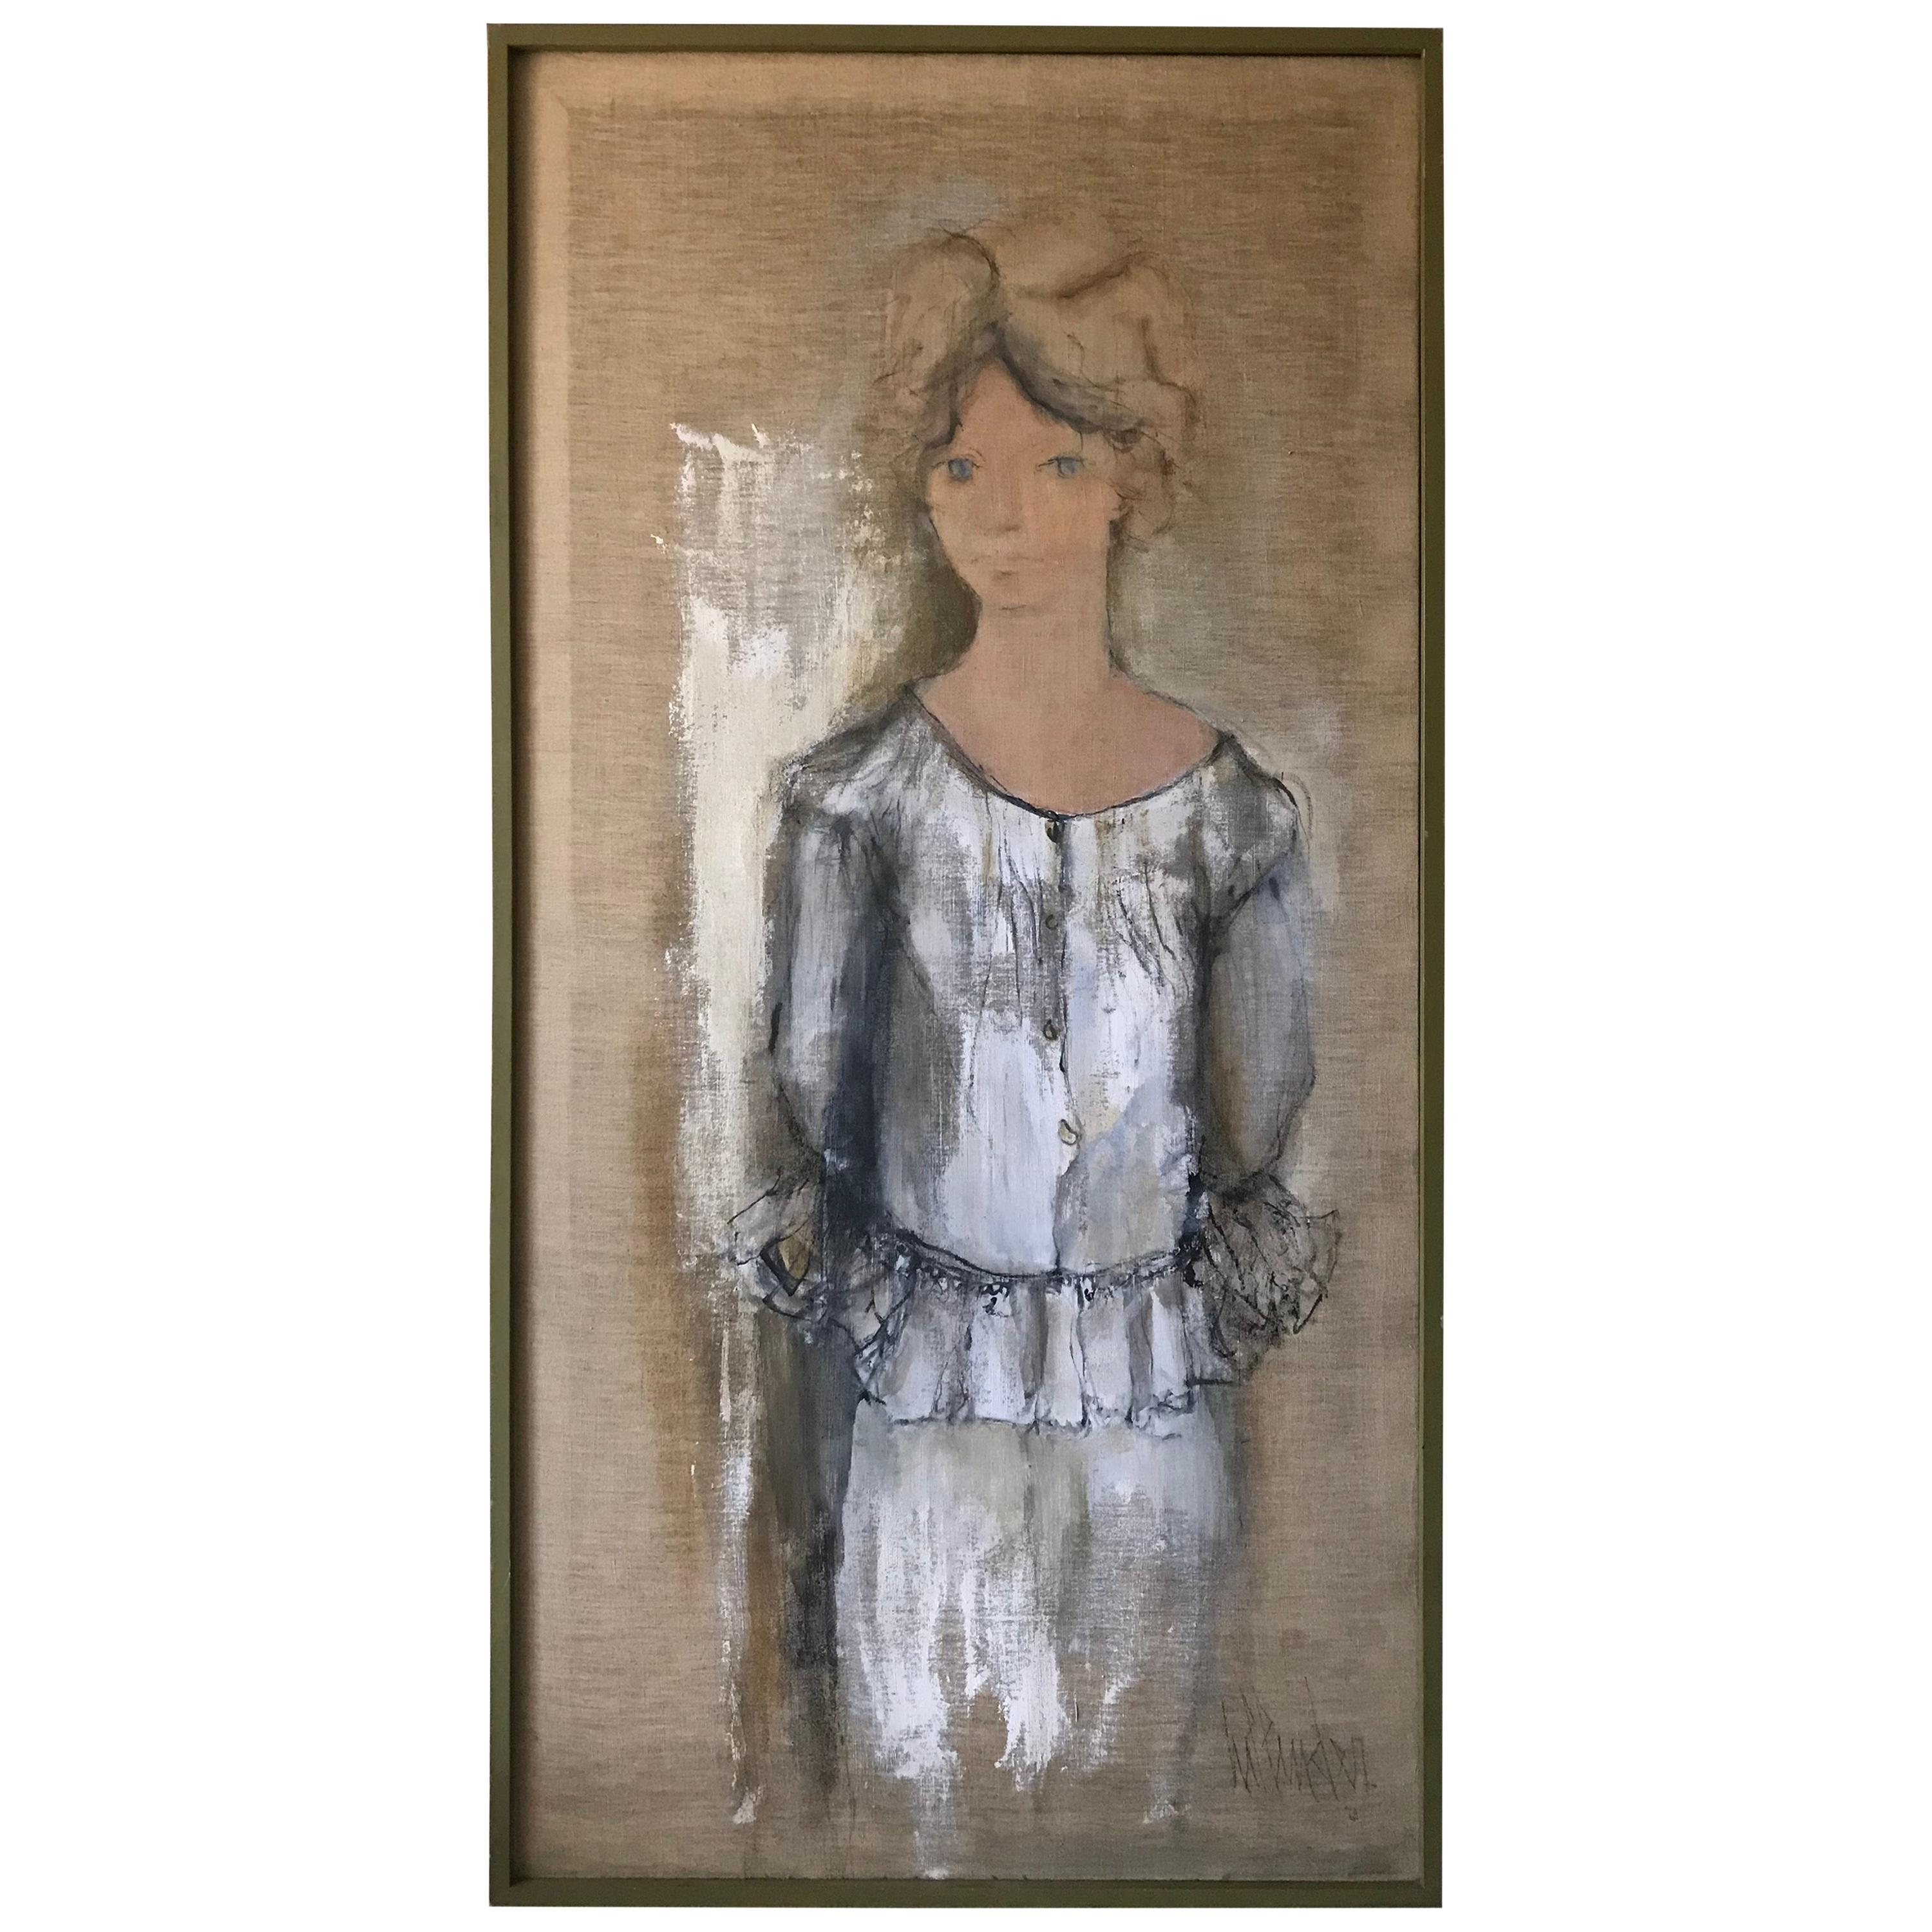 Portrait of Norma Jean Fink, Oil on Linen Signed Gino Hollander